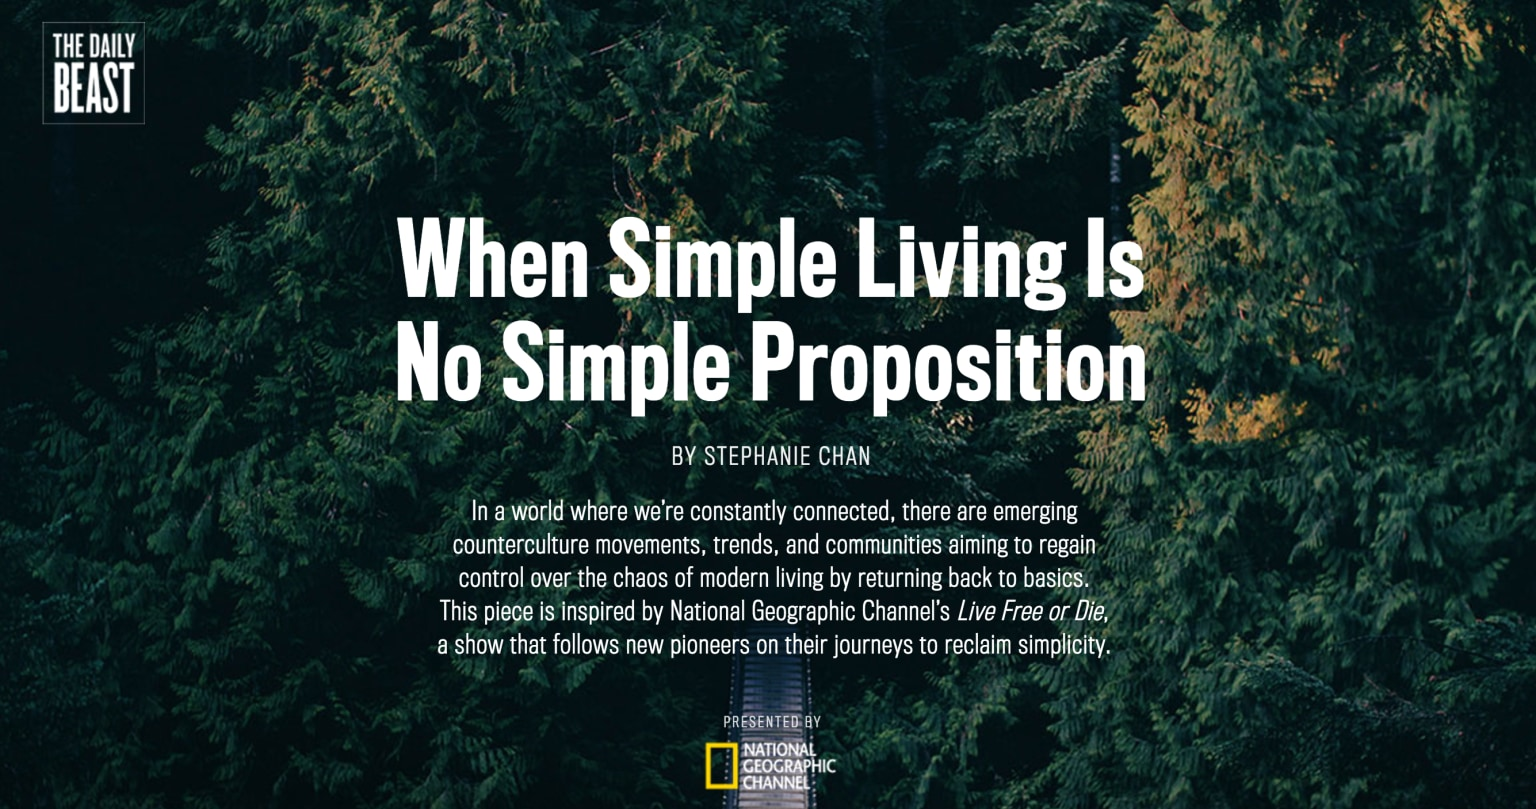 When Simple Living Is No Simple Proposition